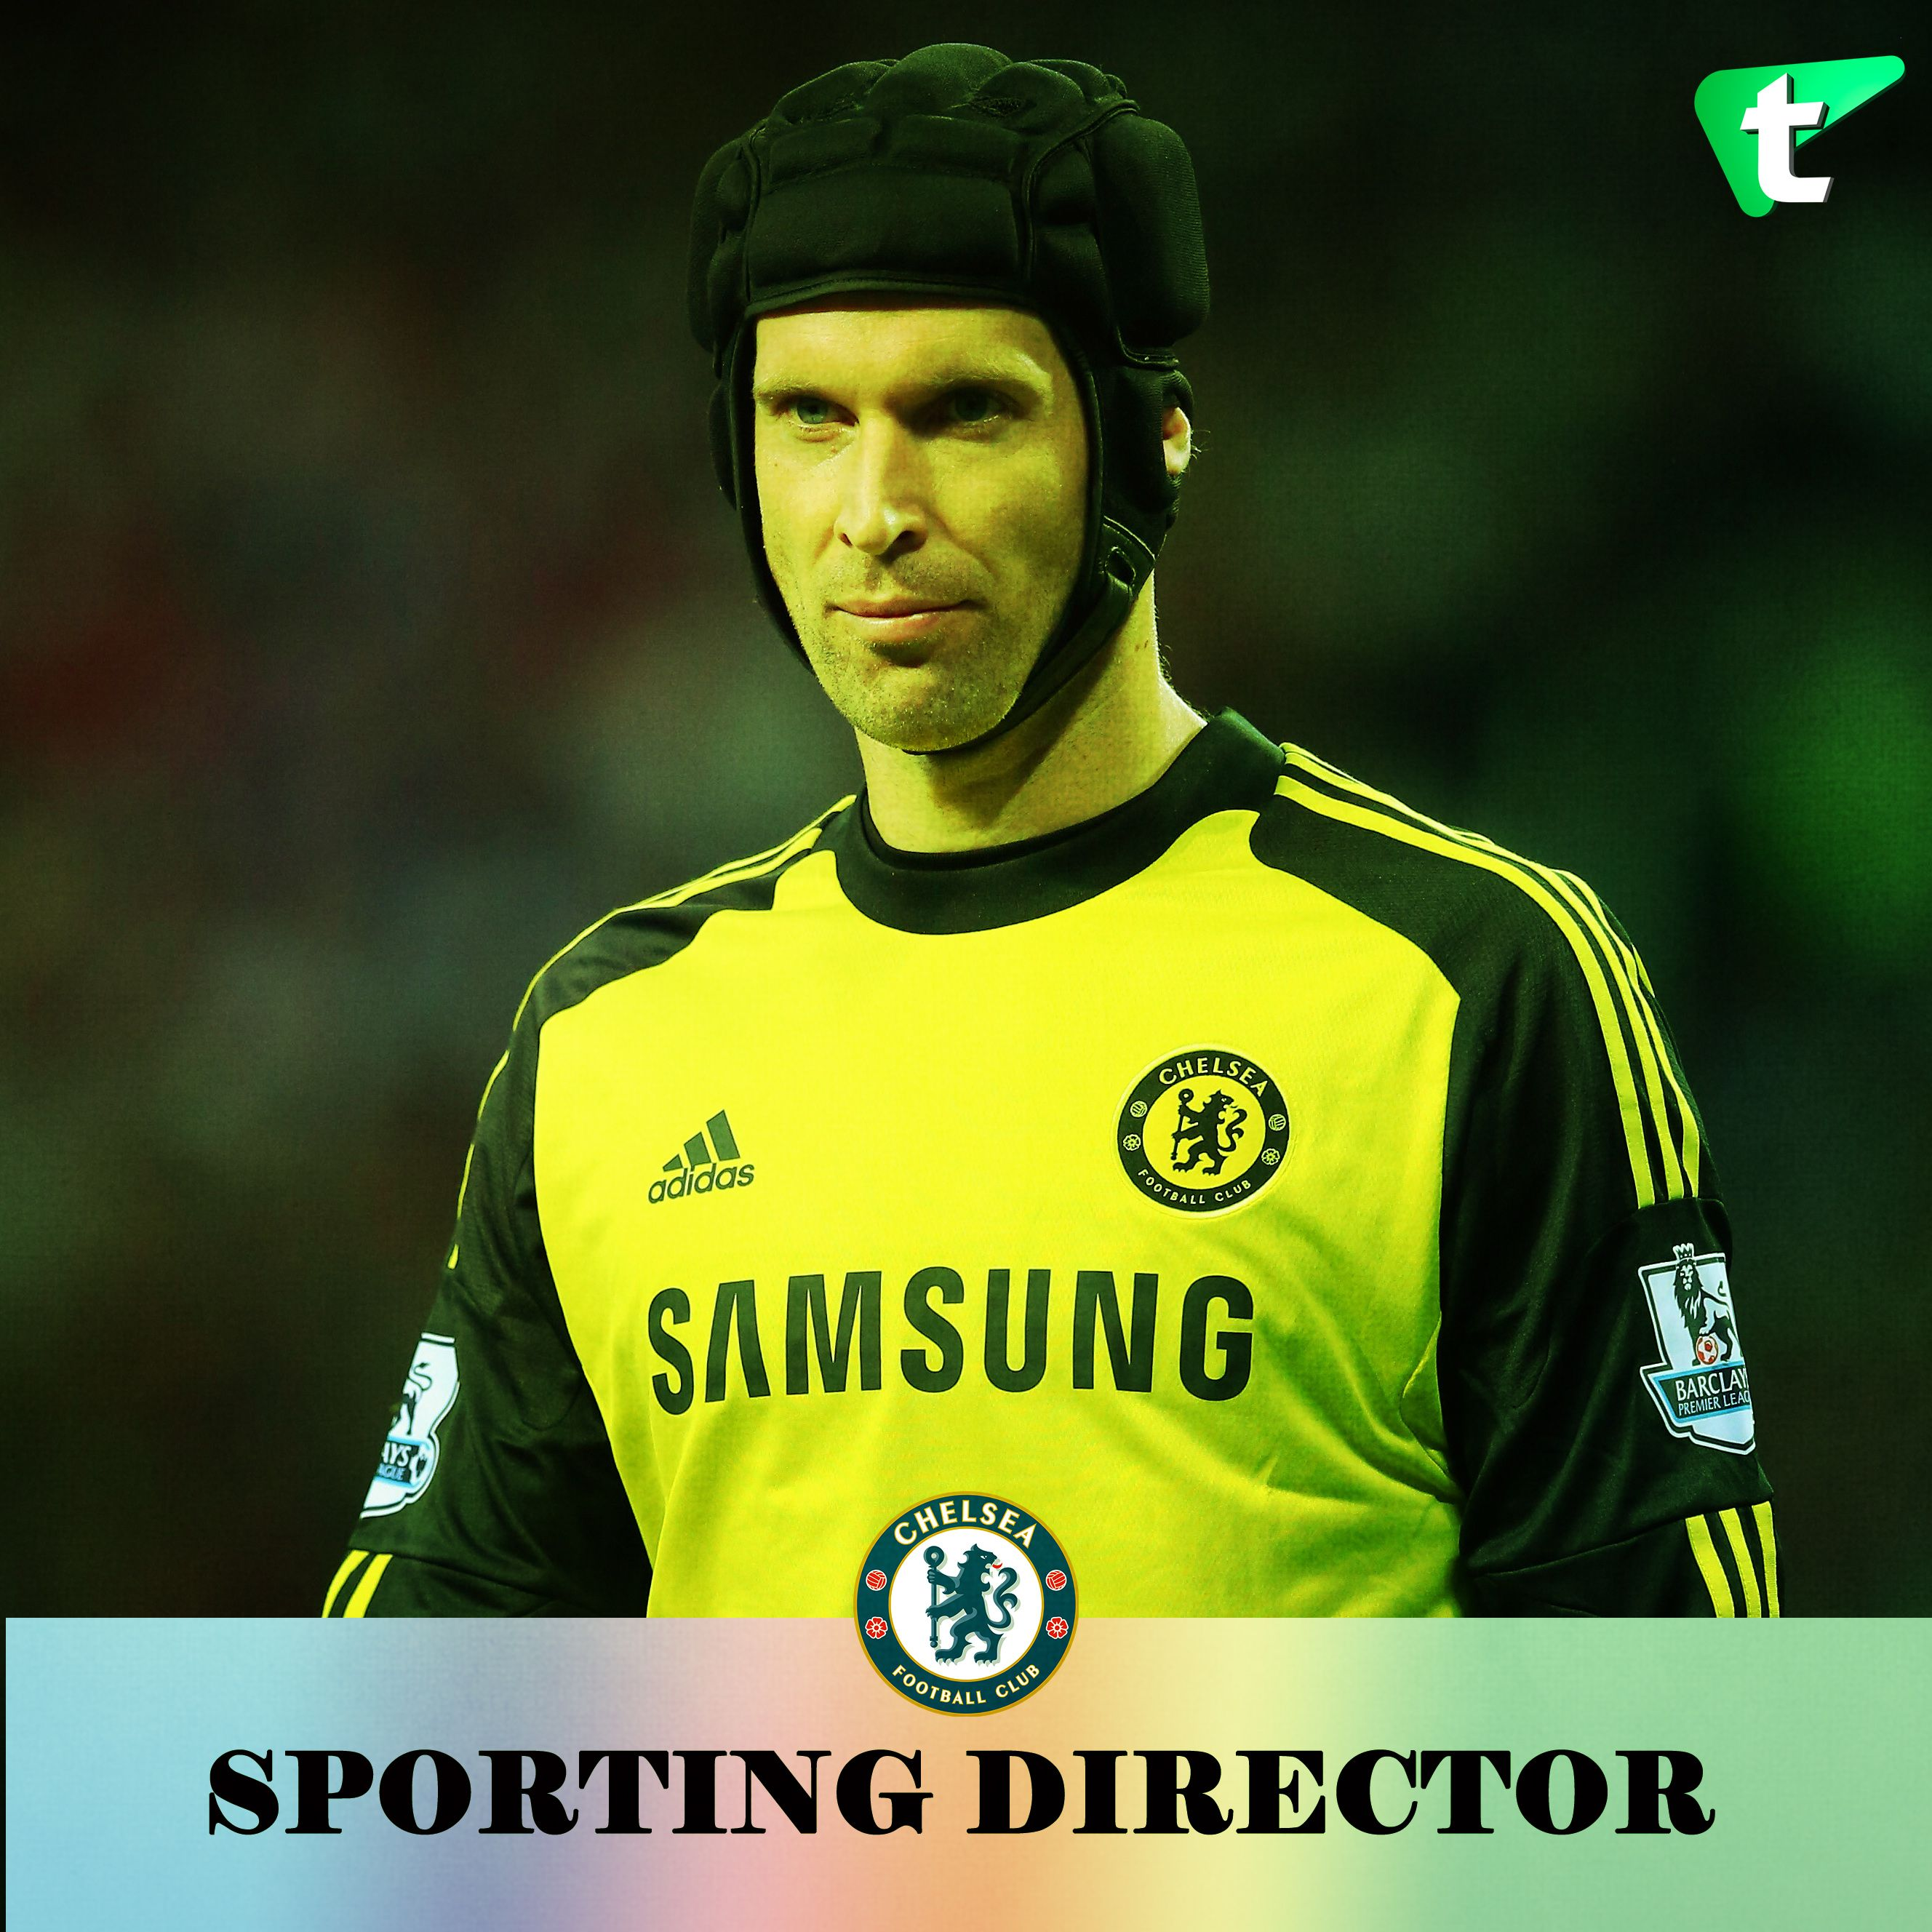 BREAKING NEWS Petr Cech is set to return to Chelsea as a